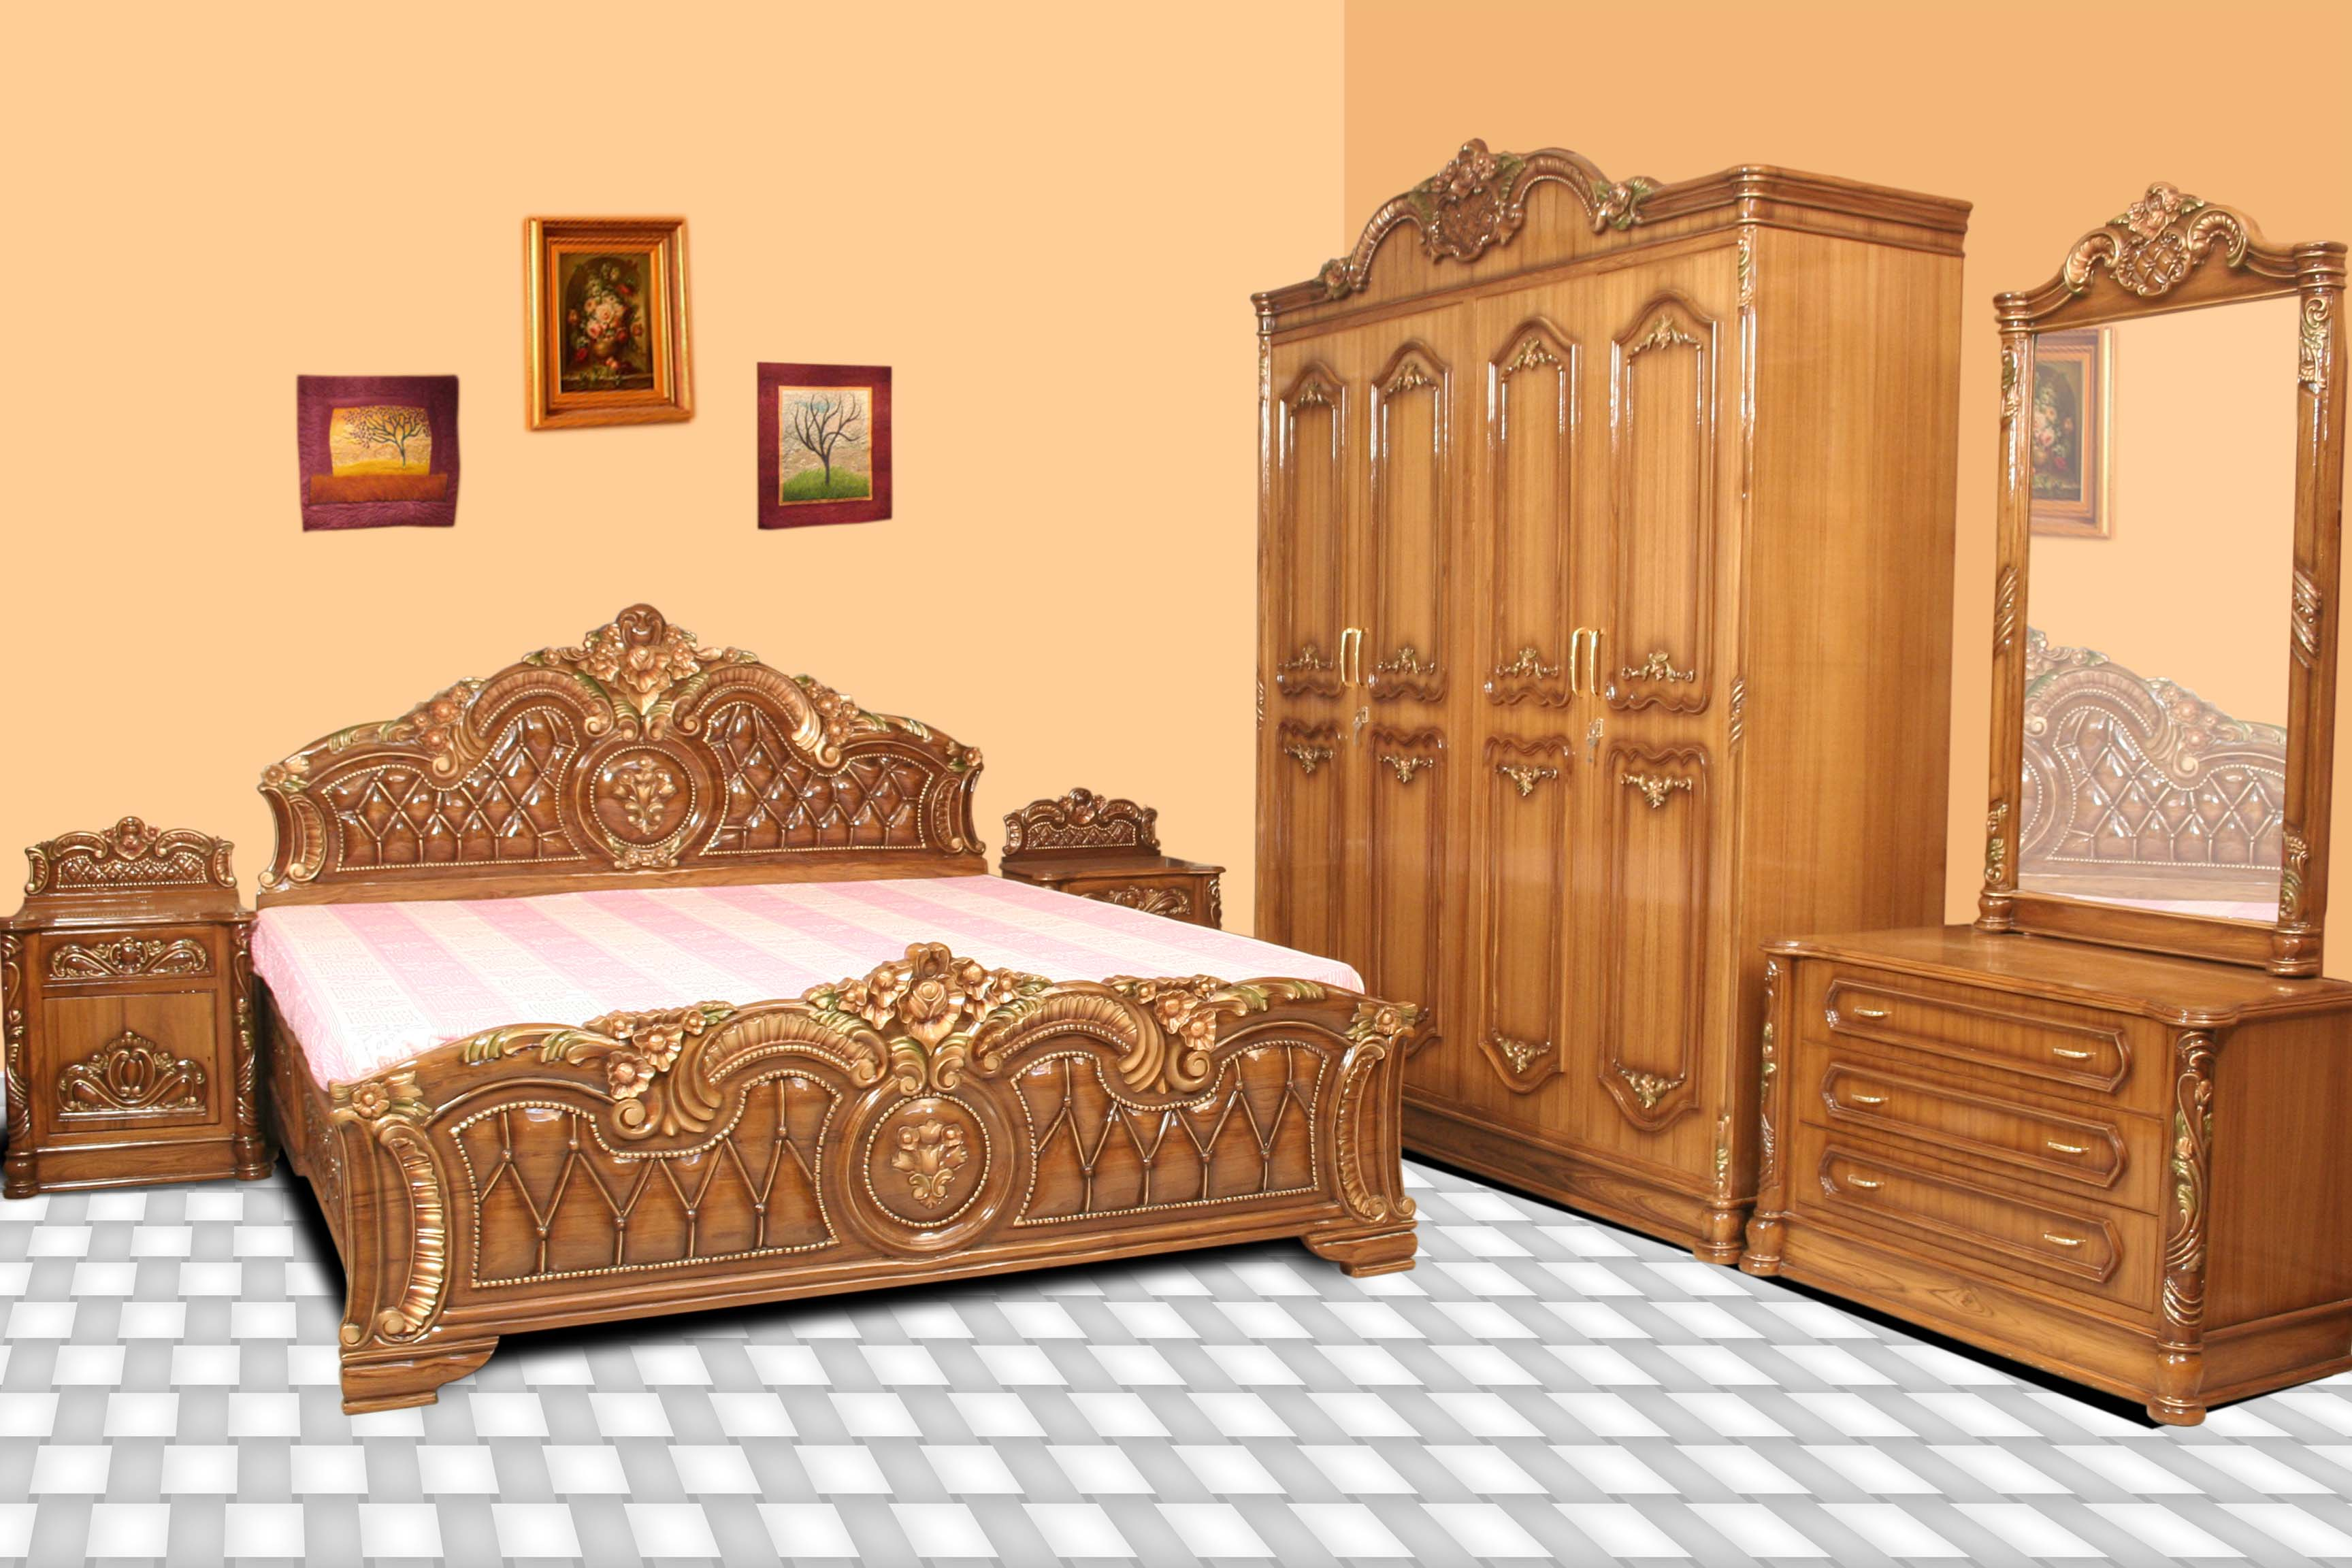 Lorded ward corinth lorded ward corinth online Home design furniture in antioch